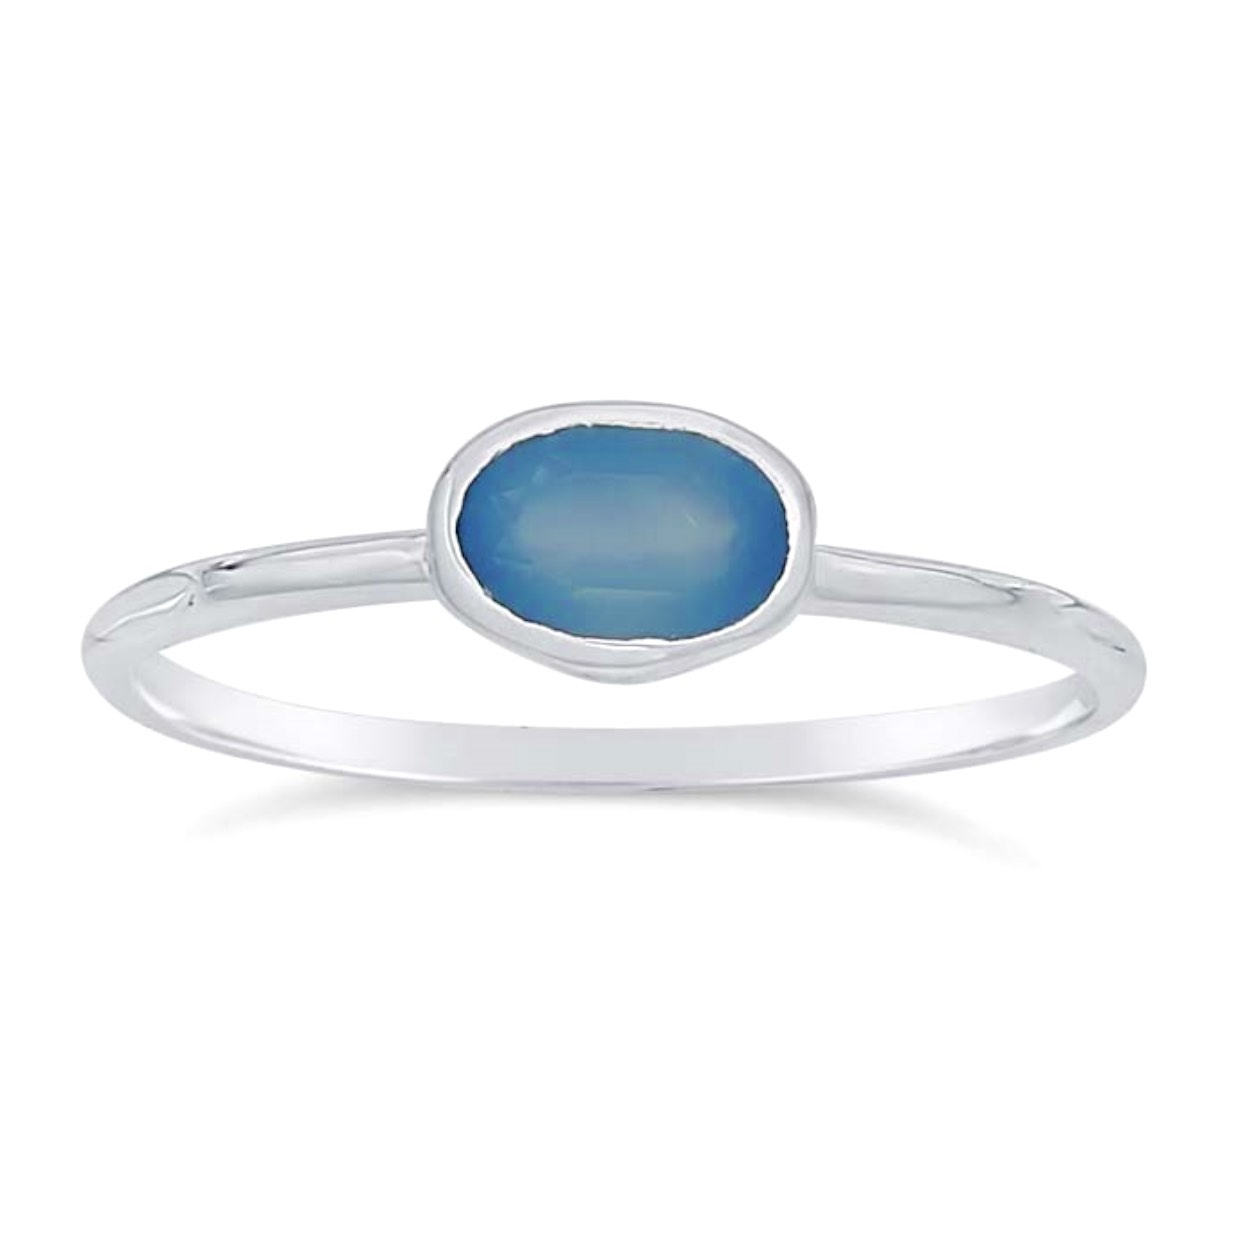 Blue Chalcedony Ring in Sterling Silver, #6392 (7) by